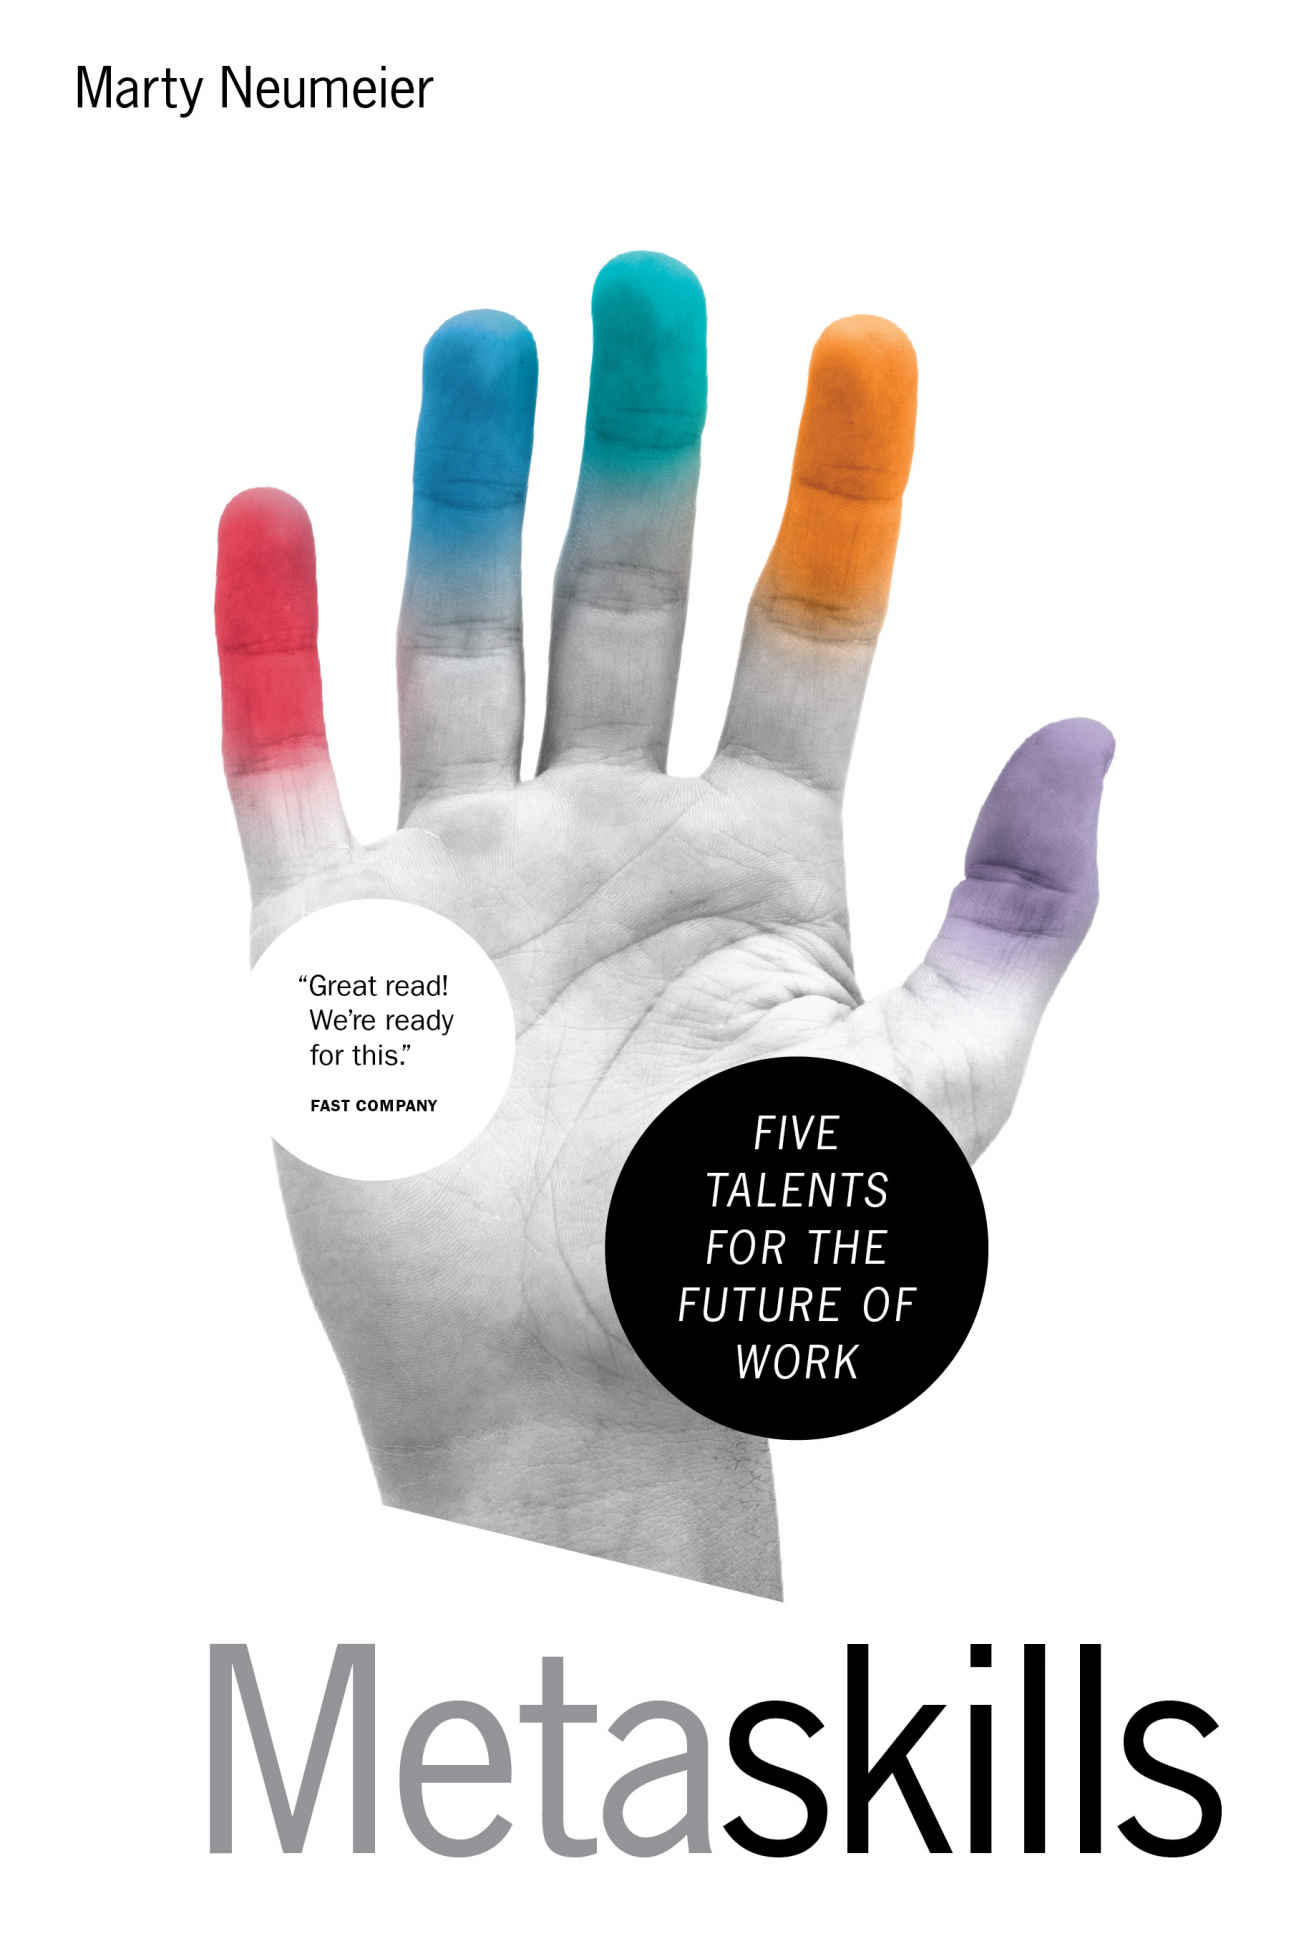 Metaskills Five Talents for the Future of Work